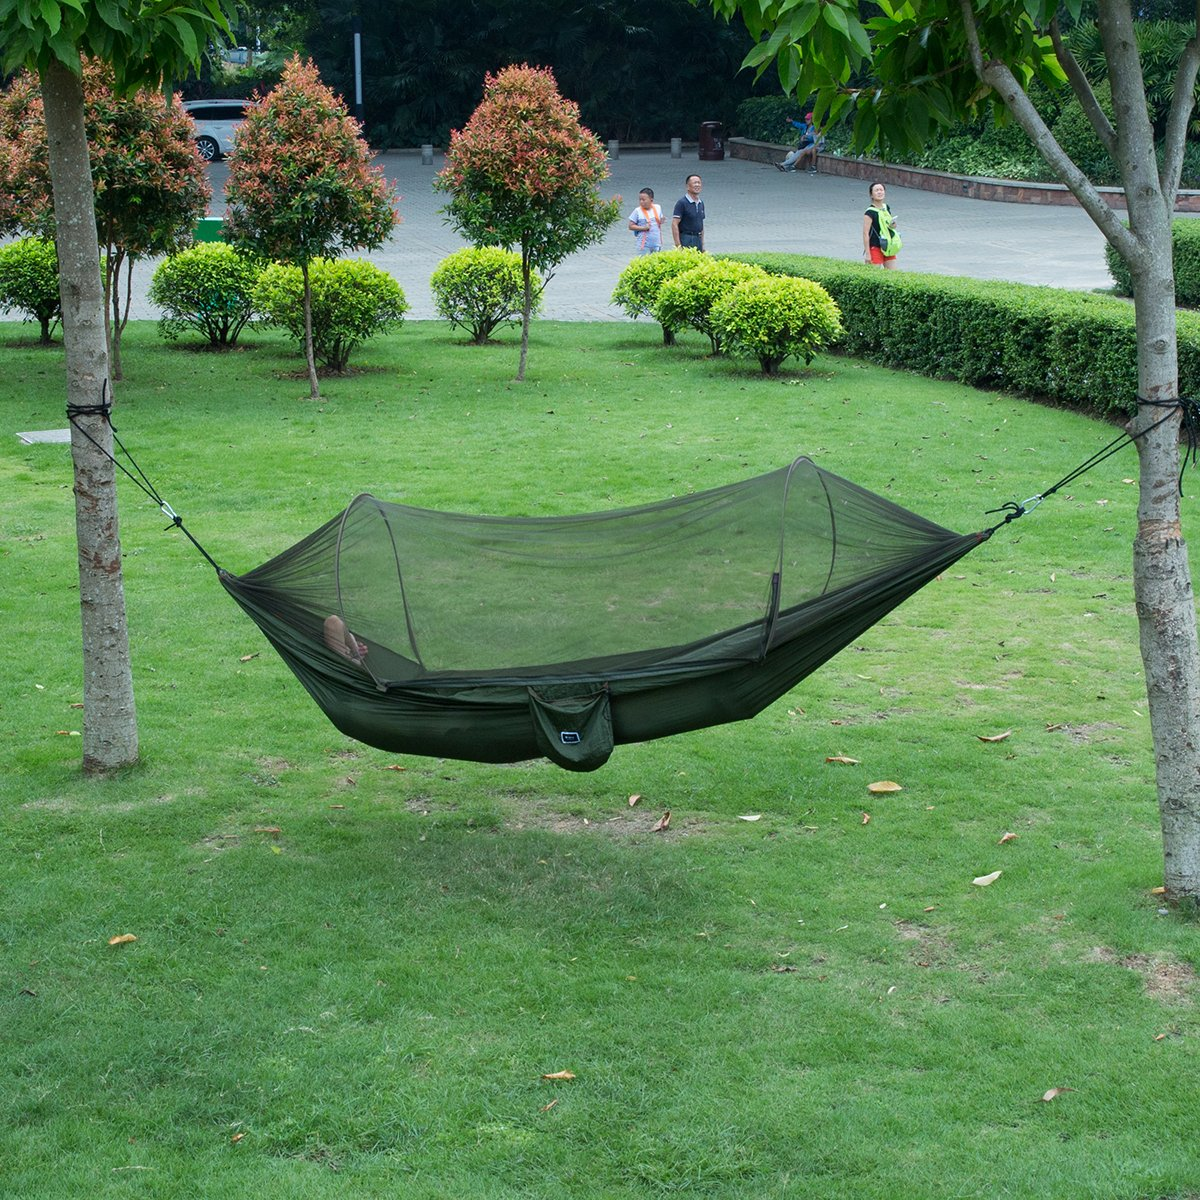 isYoung Mosquito Parachute Portable Outdoors Image 2